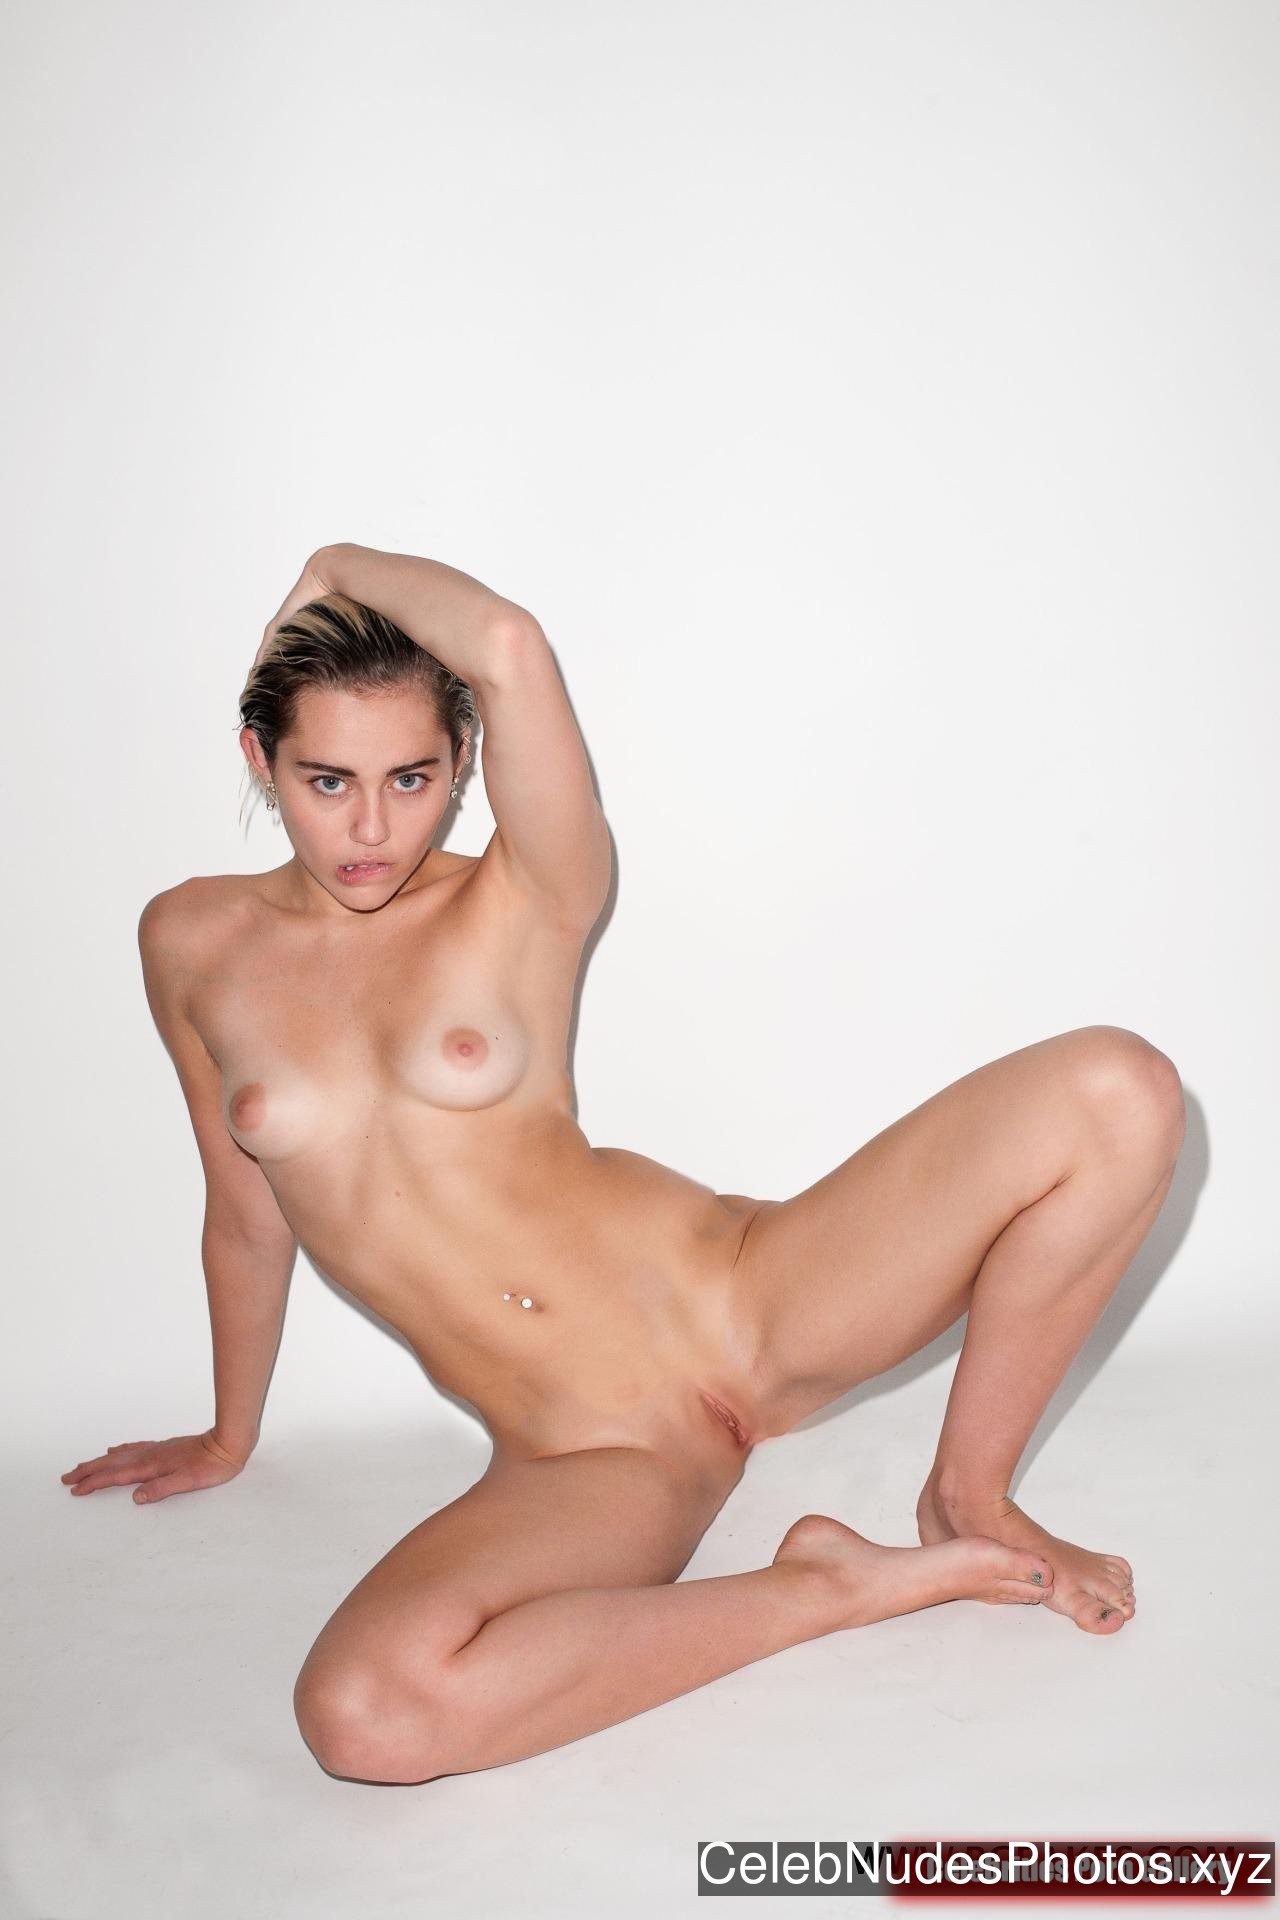 miley cyrus naked uncensored pics